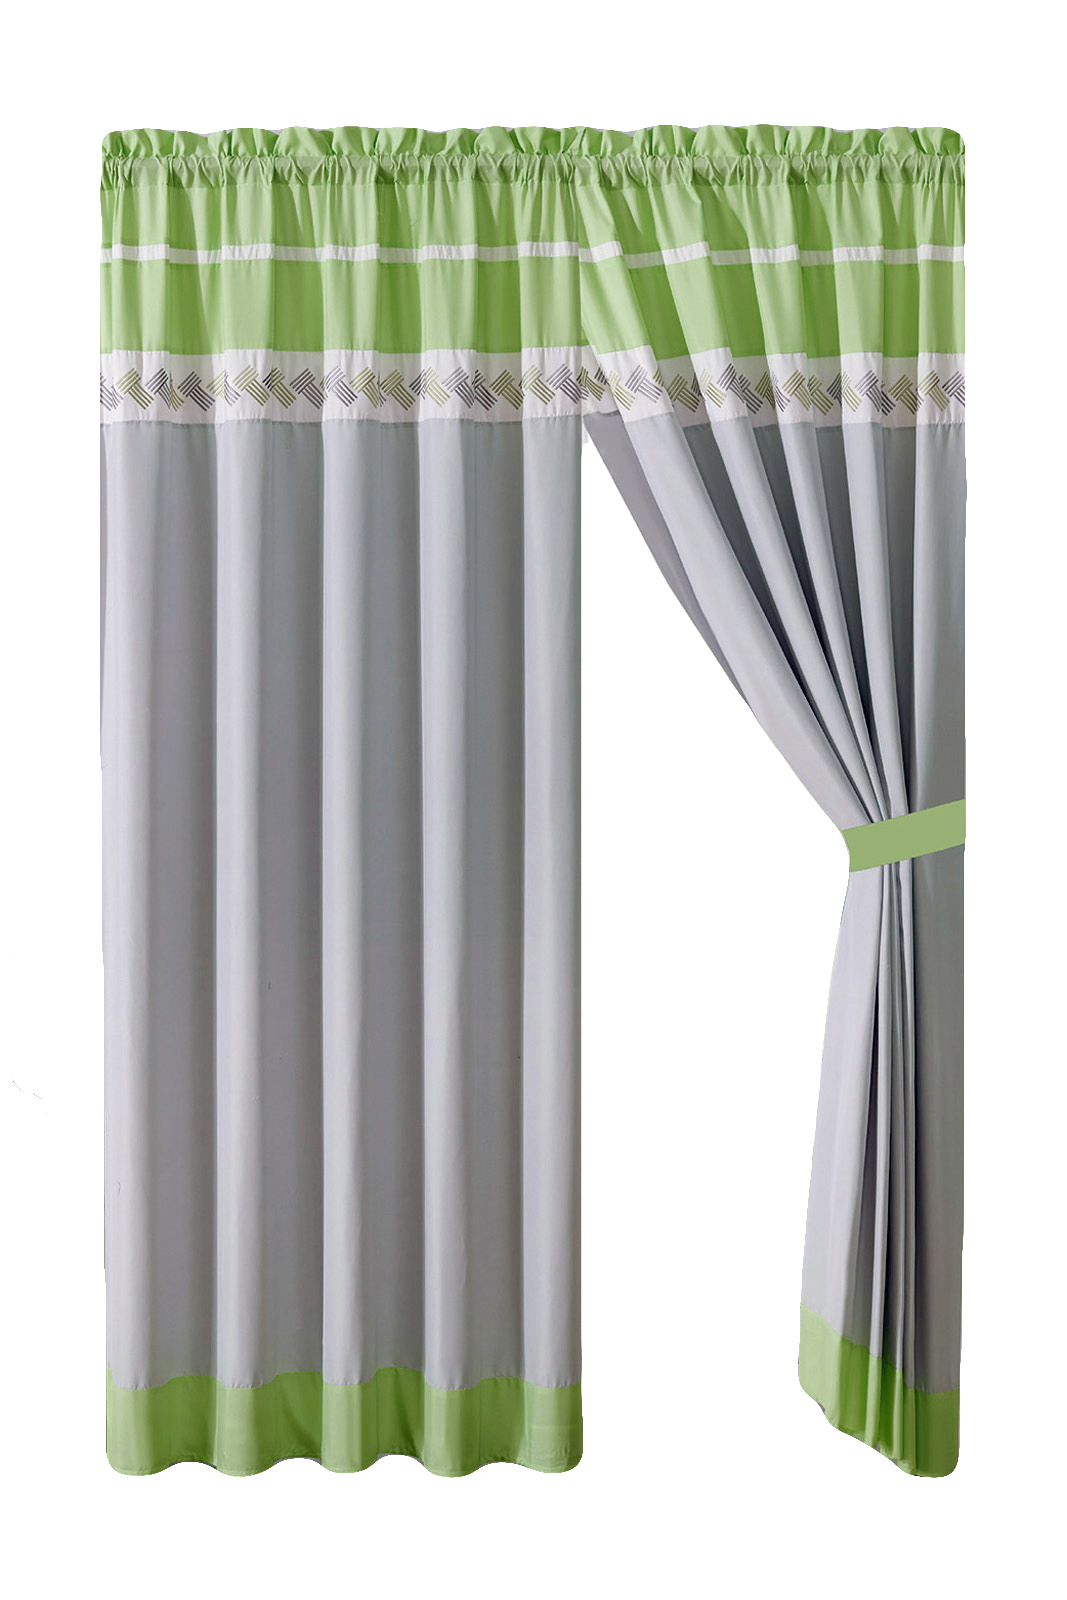 4 Pc Knoton Lines Stripe Embroidery Curtain Set Lime Green Gray Off White Valance Sheer Liner Drape